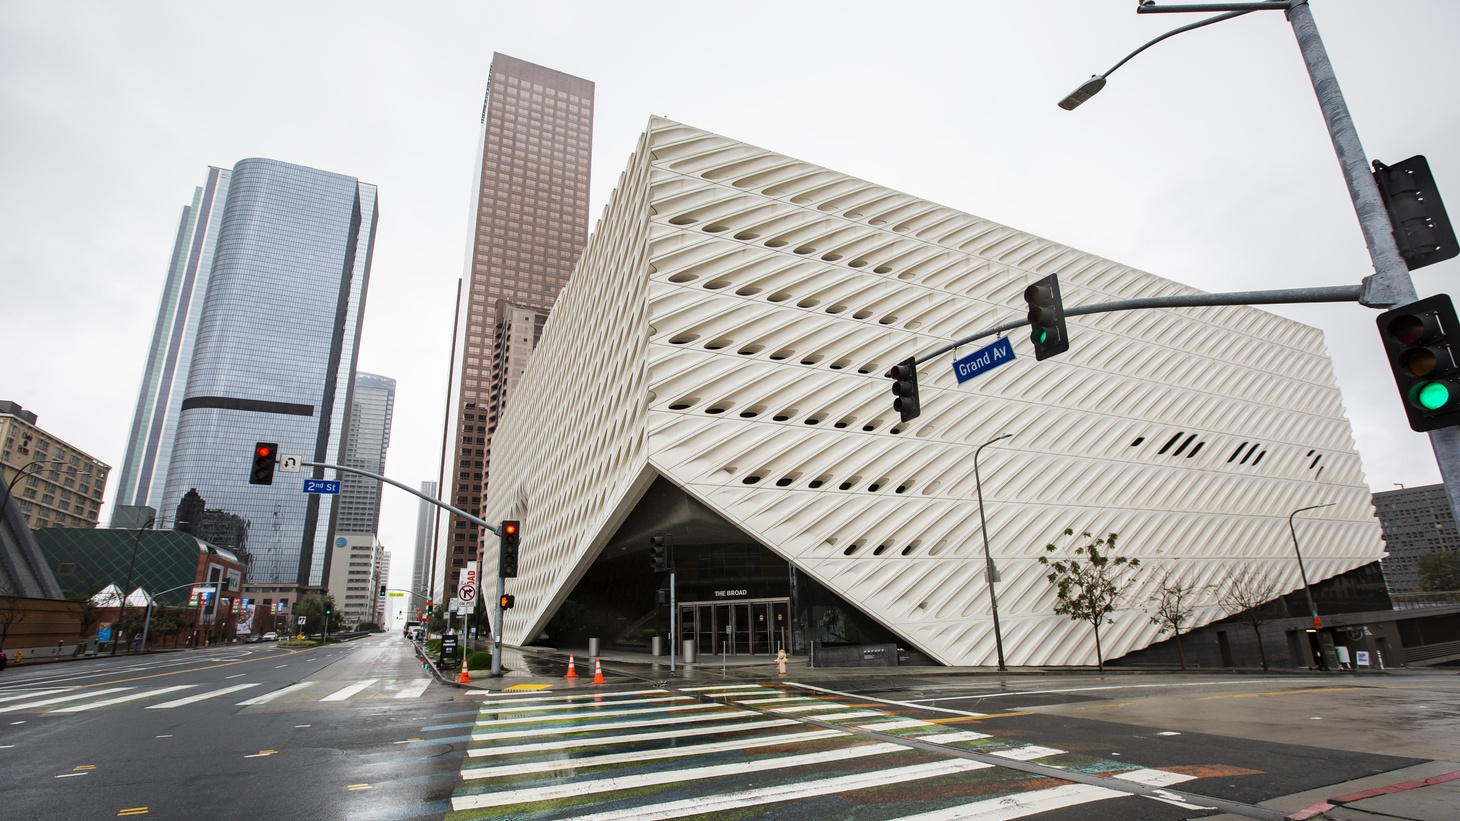 Many museums are closed, including The Broad Museum in downtown LA, but you can still check exhibits online.